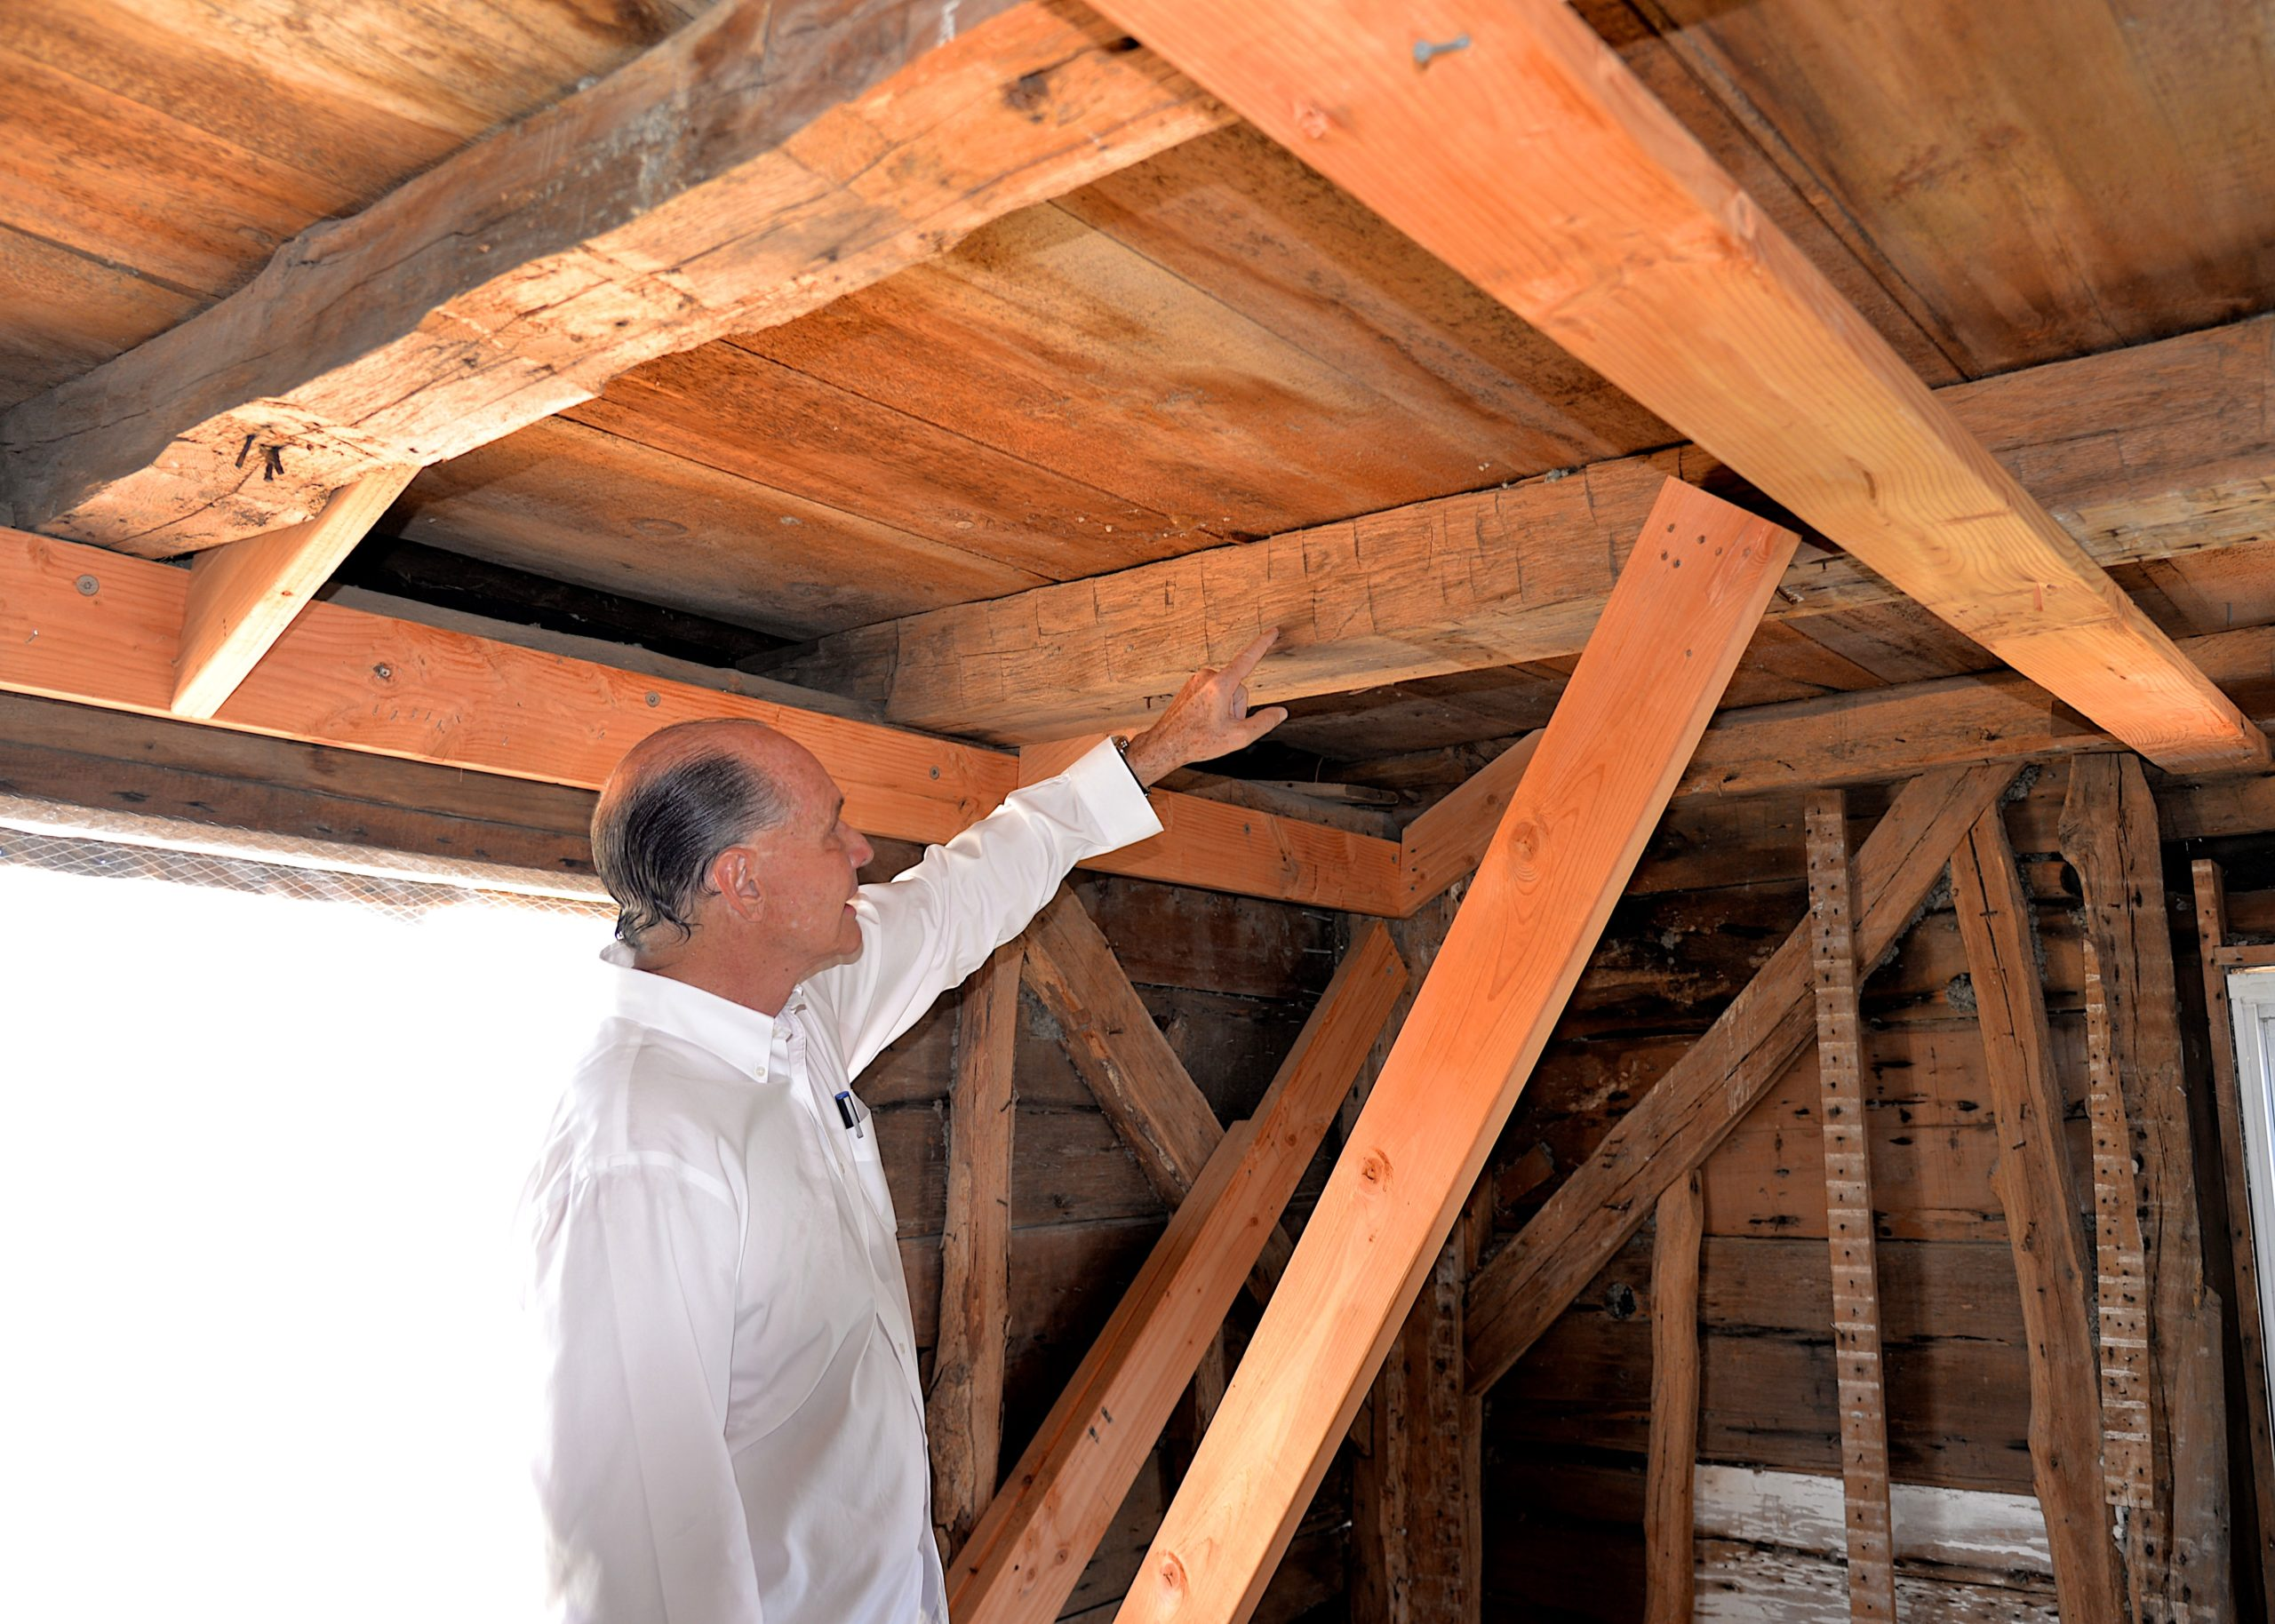 Jeffrey Colle shows off the hand-hewn beams in the historic home.KYRIL BROMLEY